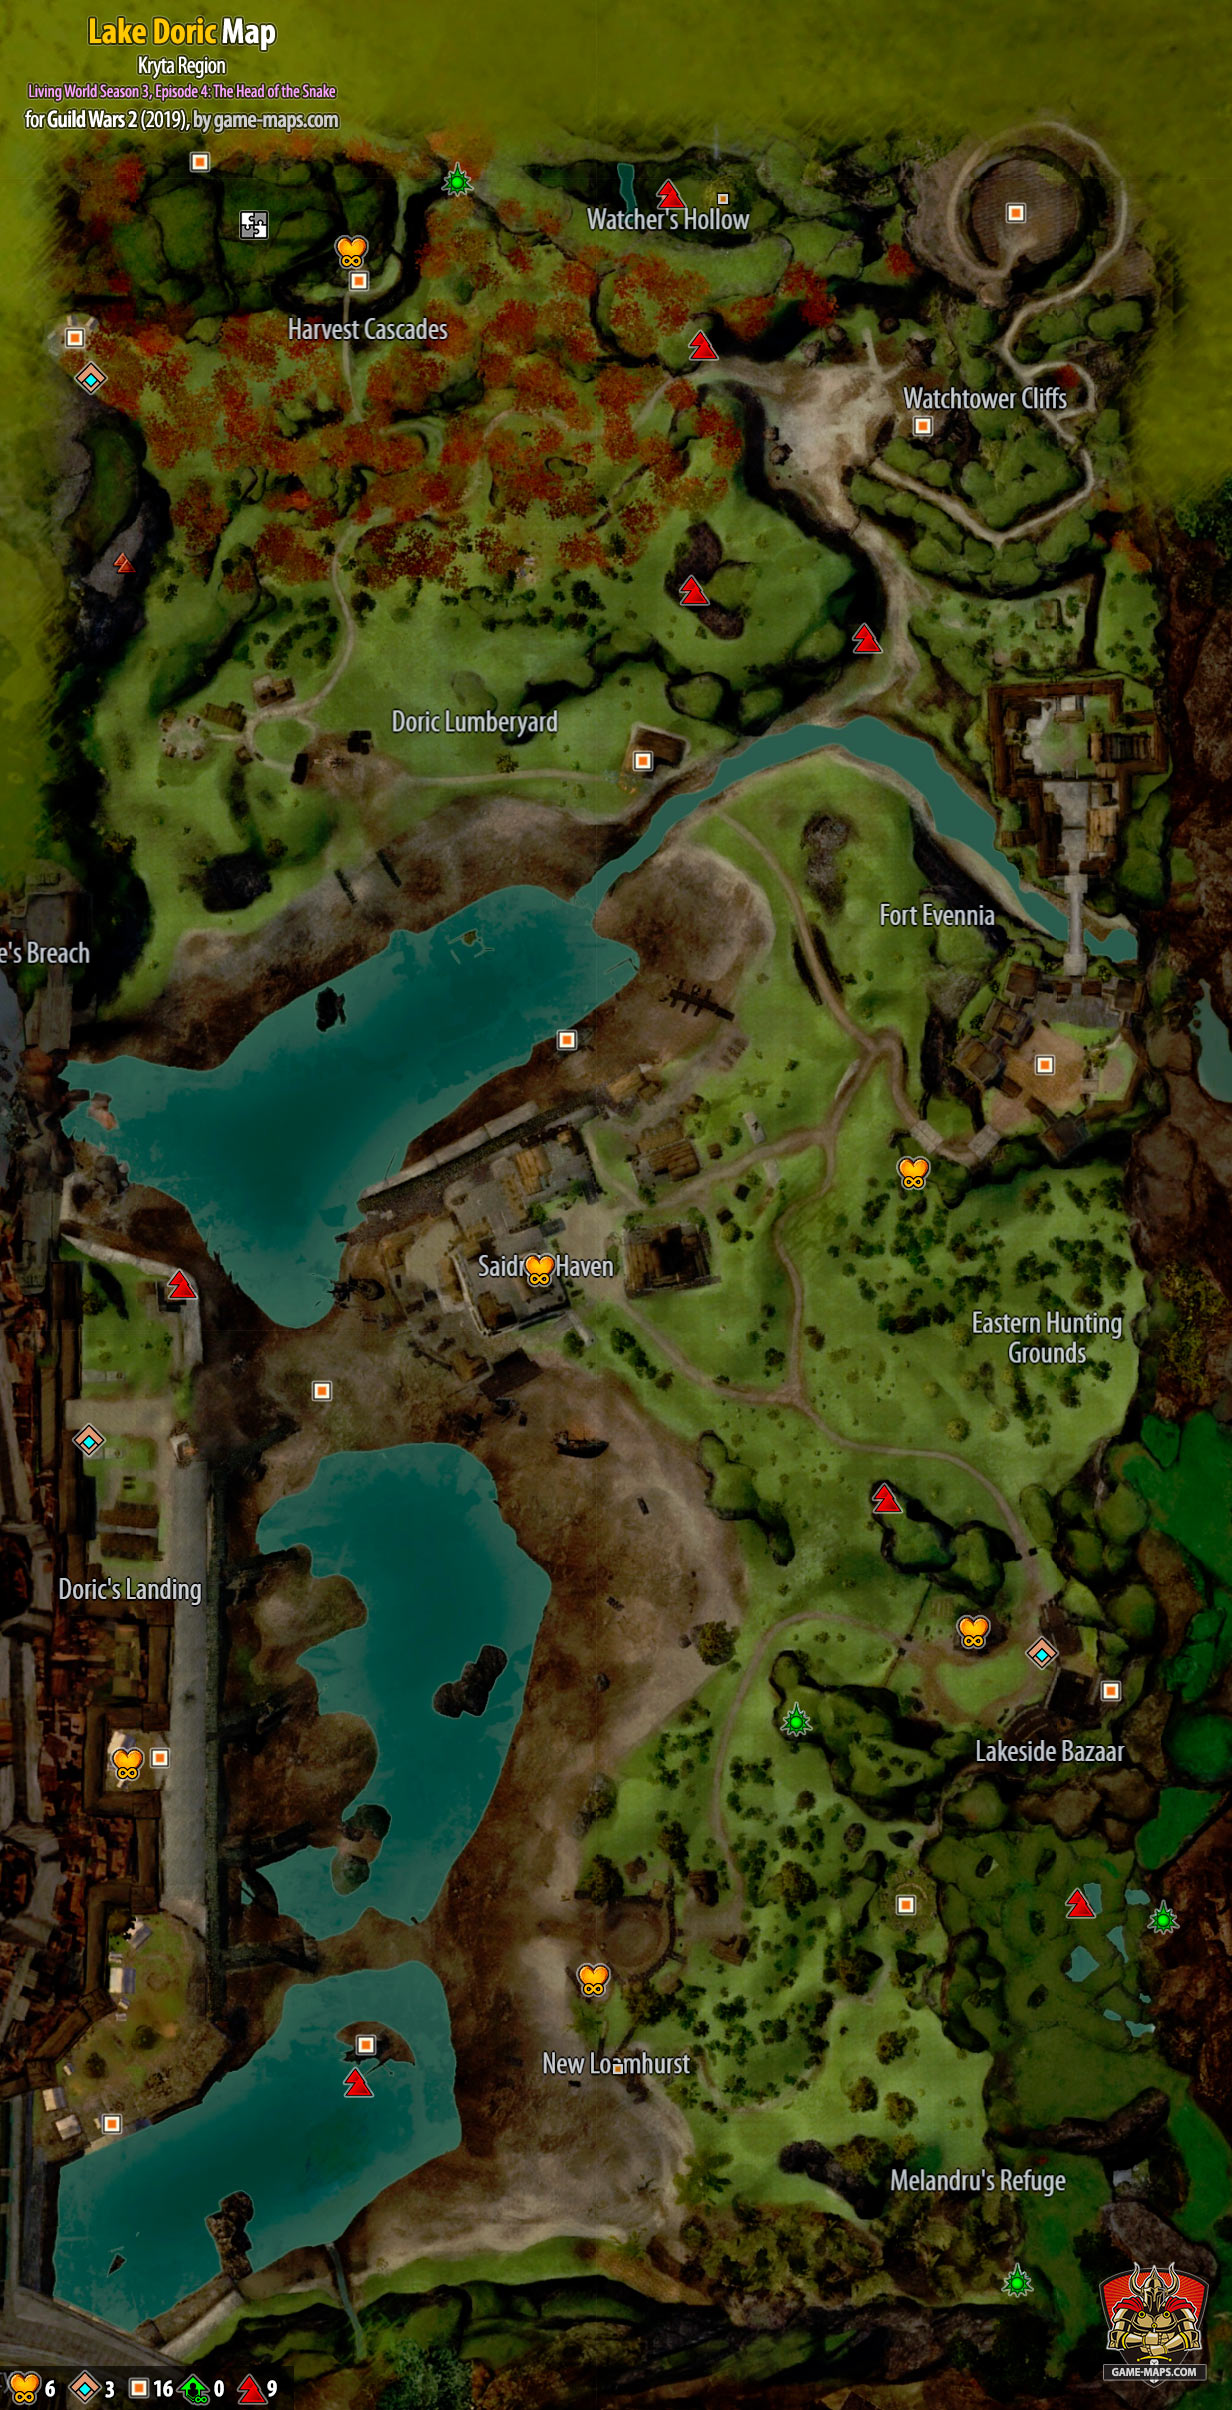 Gw2 Path Of Fire Mastery Points : mastery, points, Doric, (2019)-, Guild, Game-maps.com